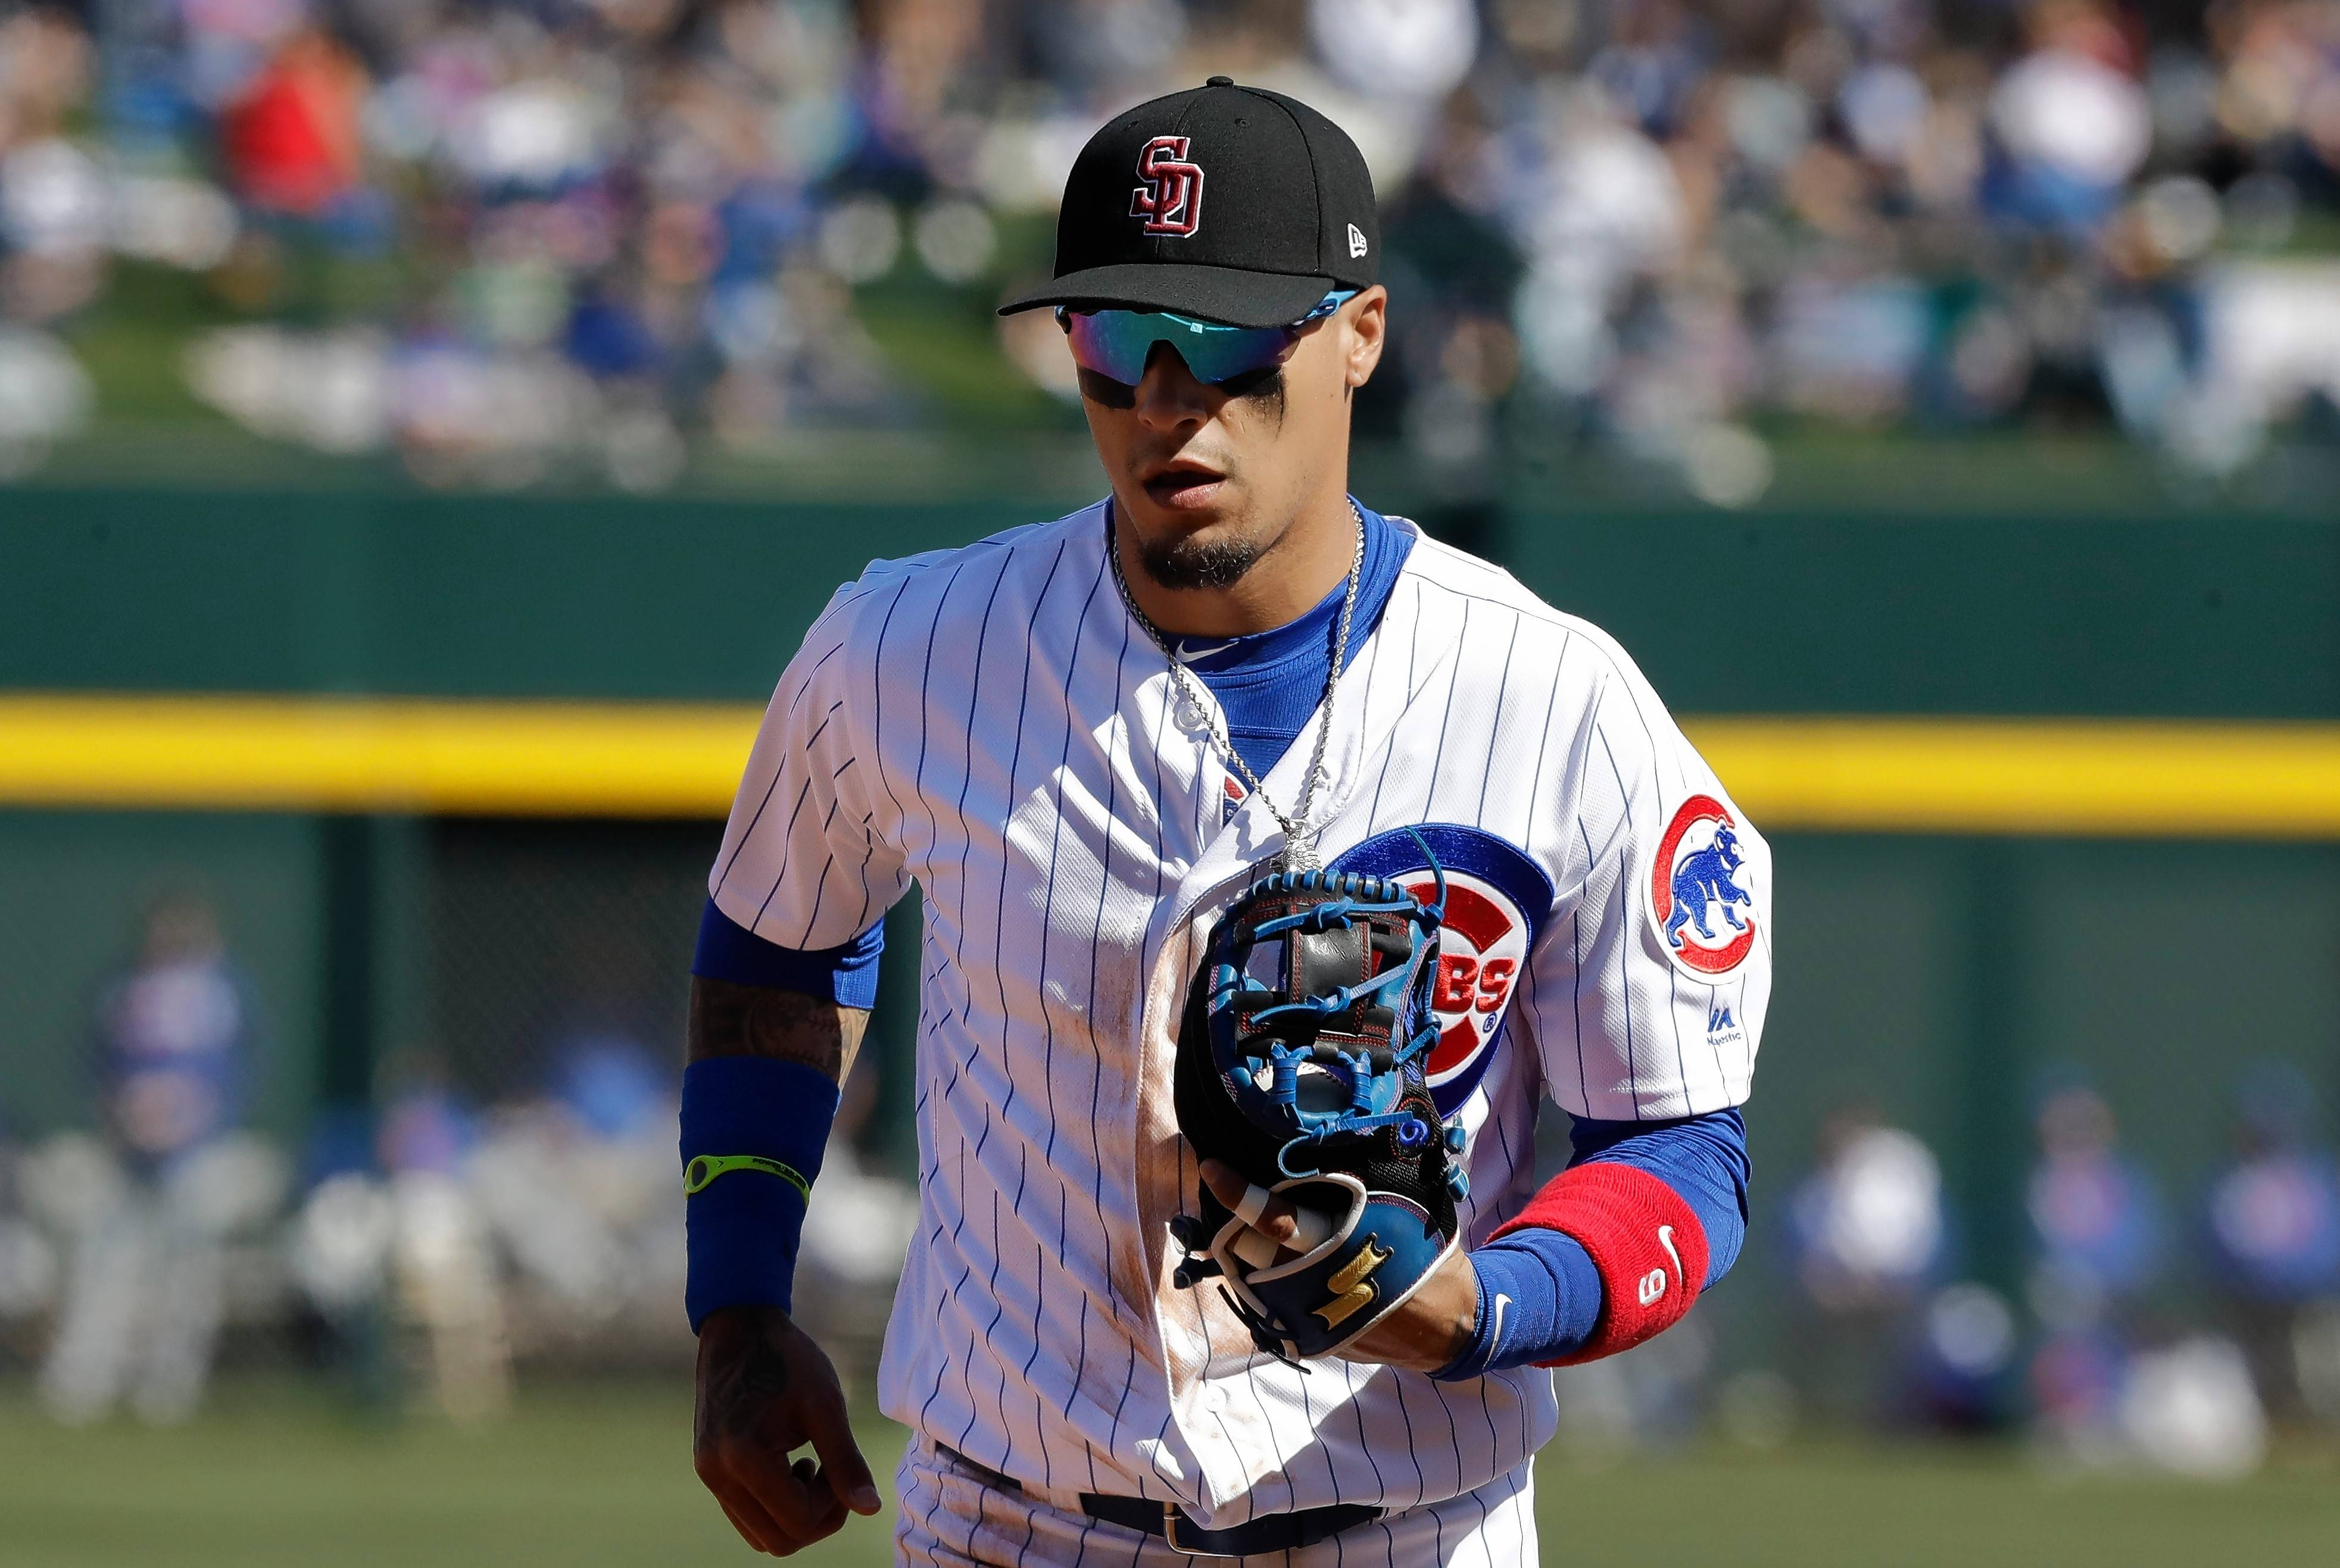 Chicago Cubs' Baez continues to dazzle on defense